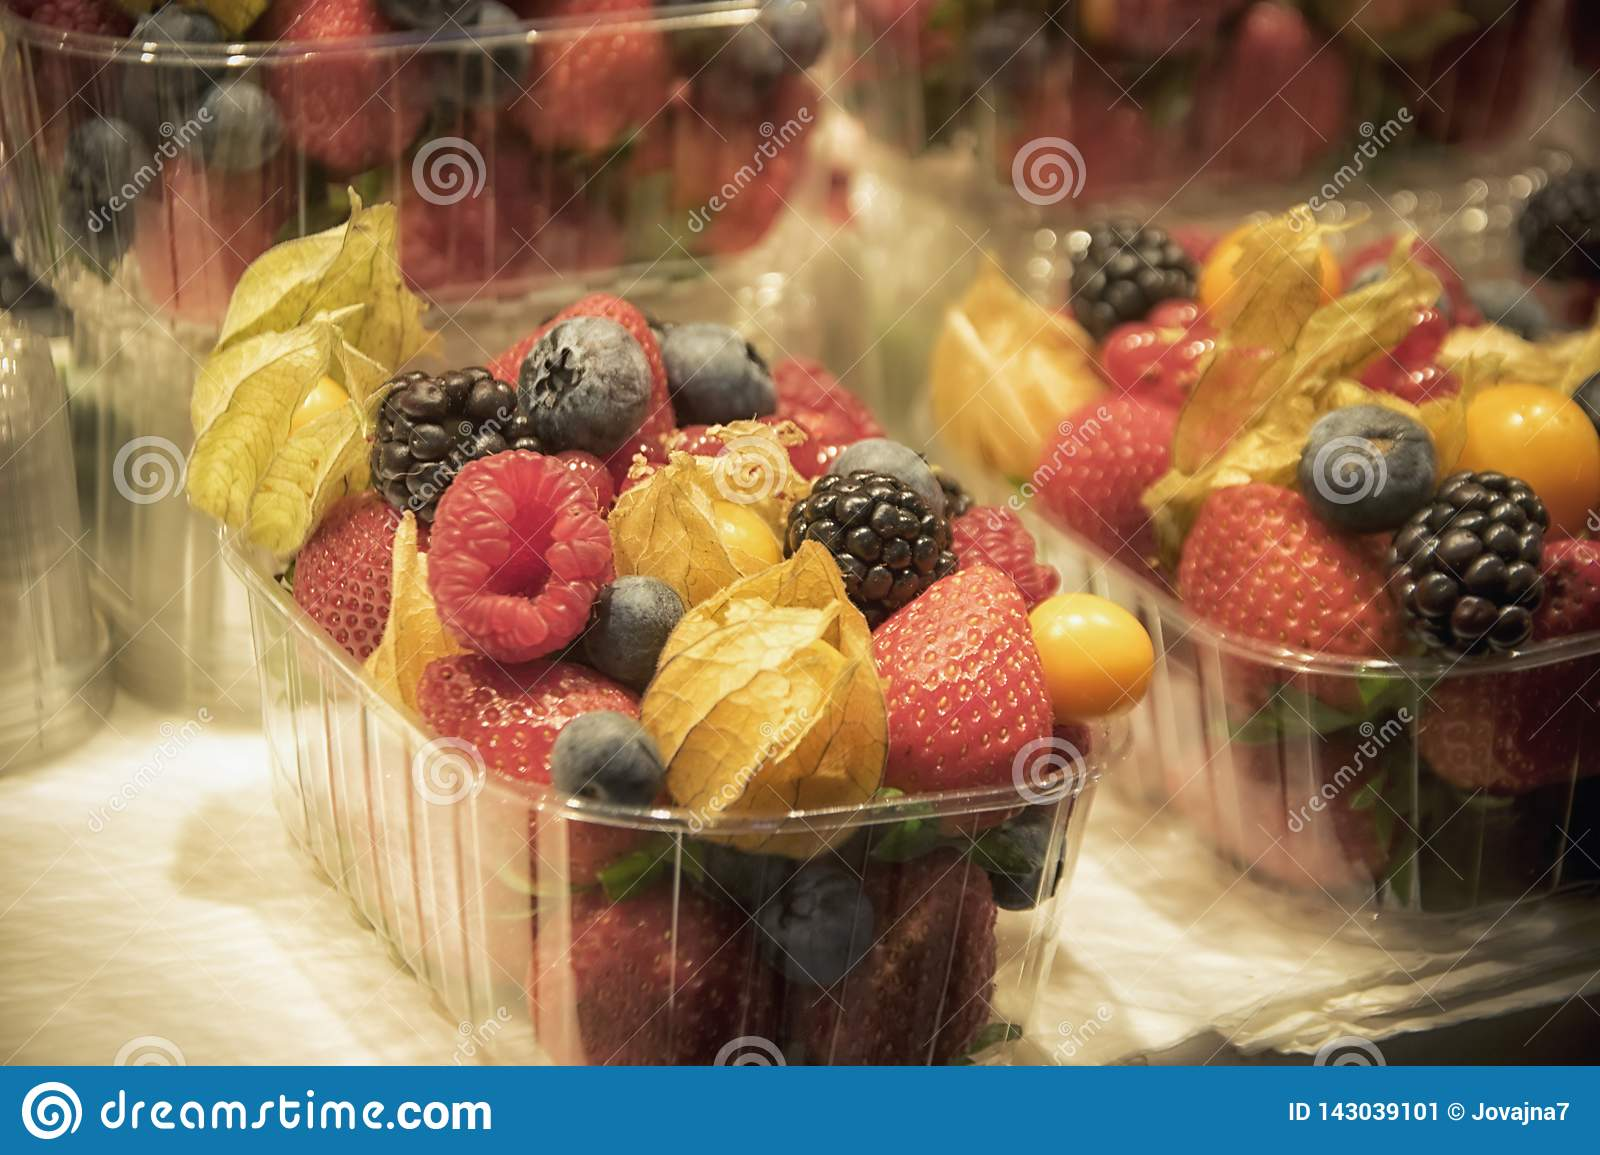 Assorted Fruit in Plastic Boxes